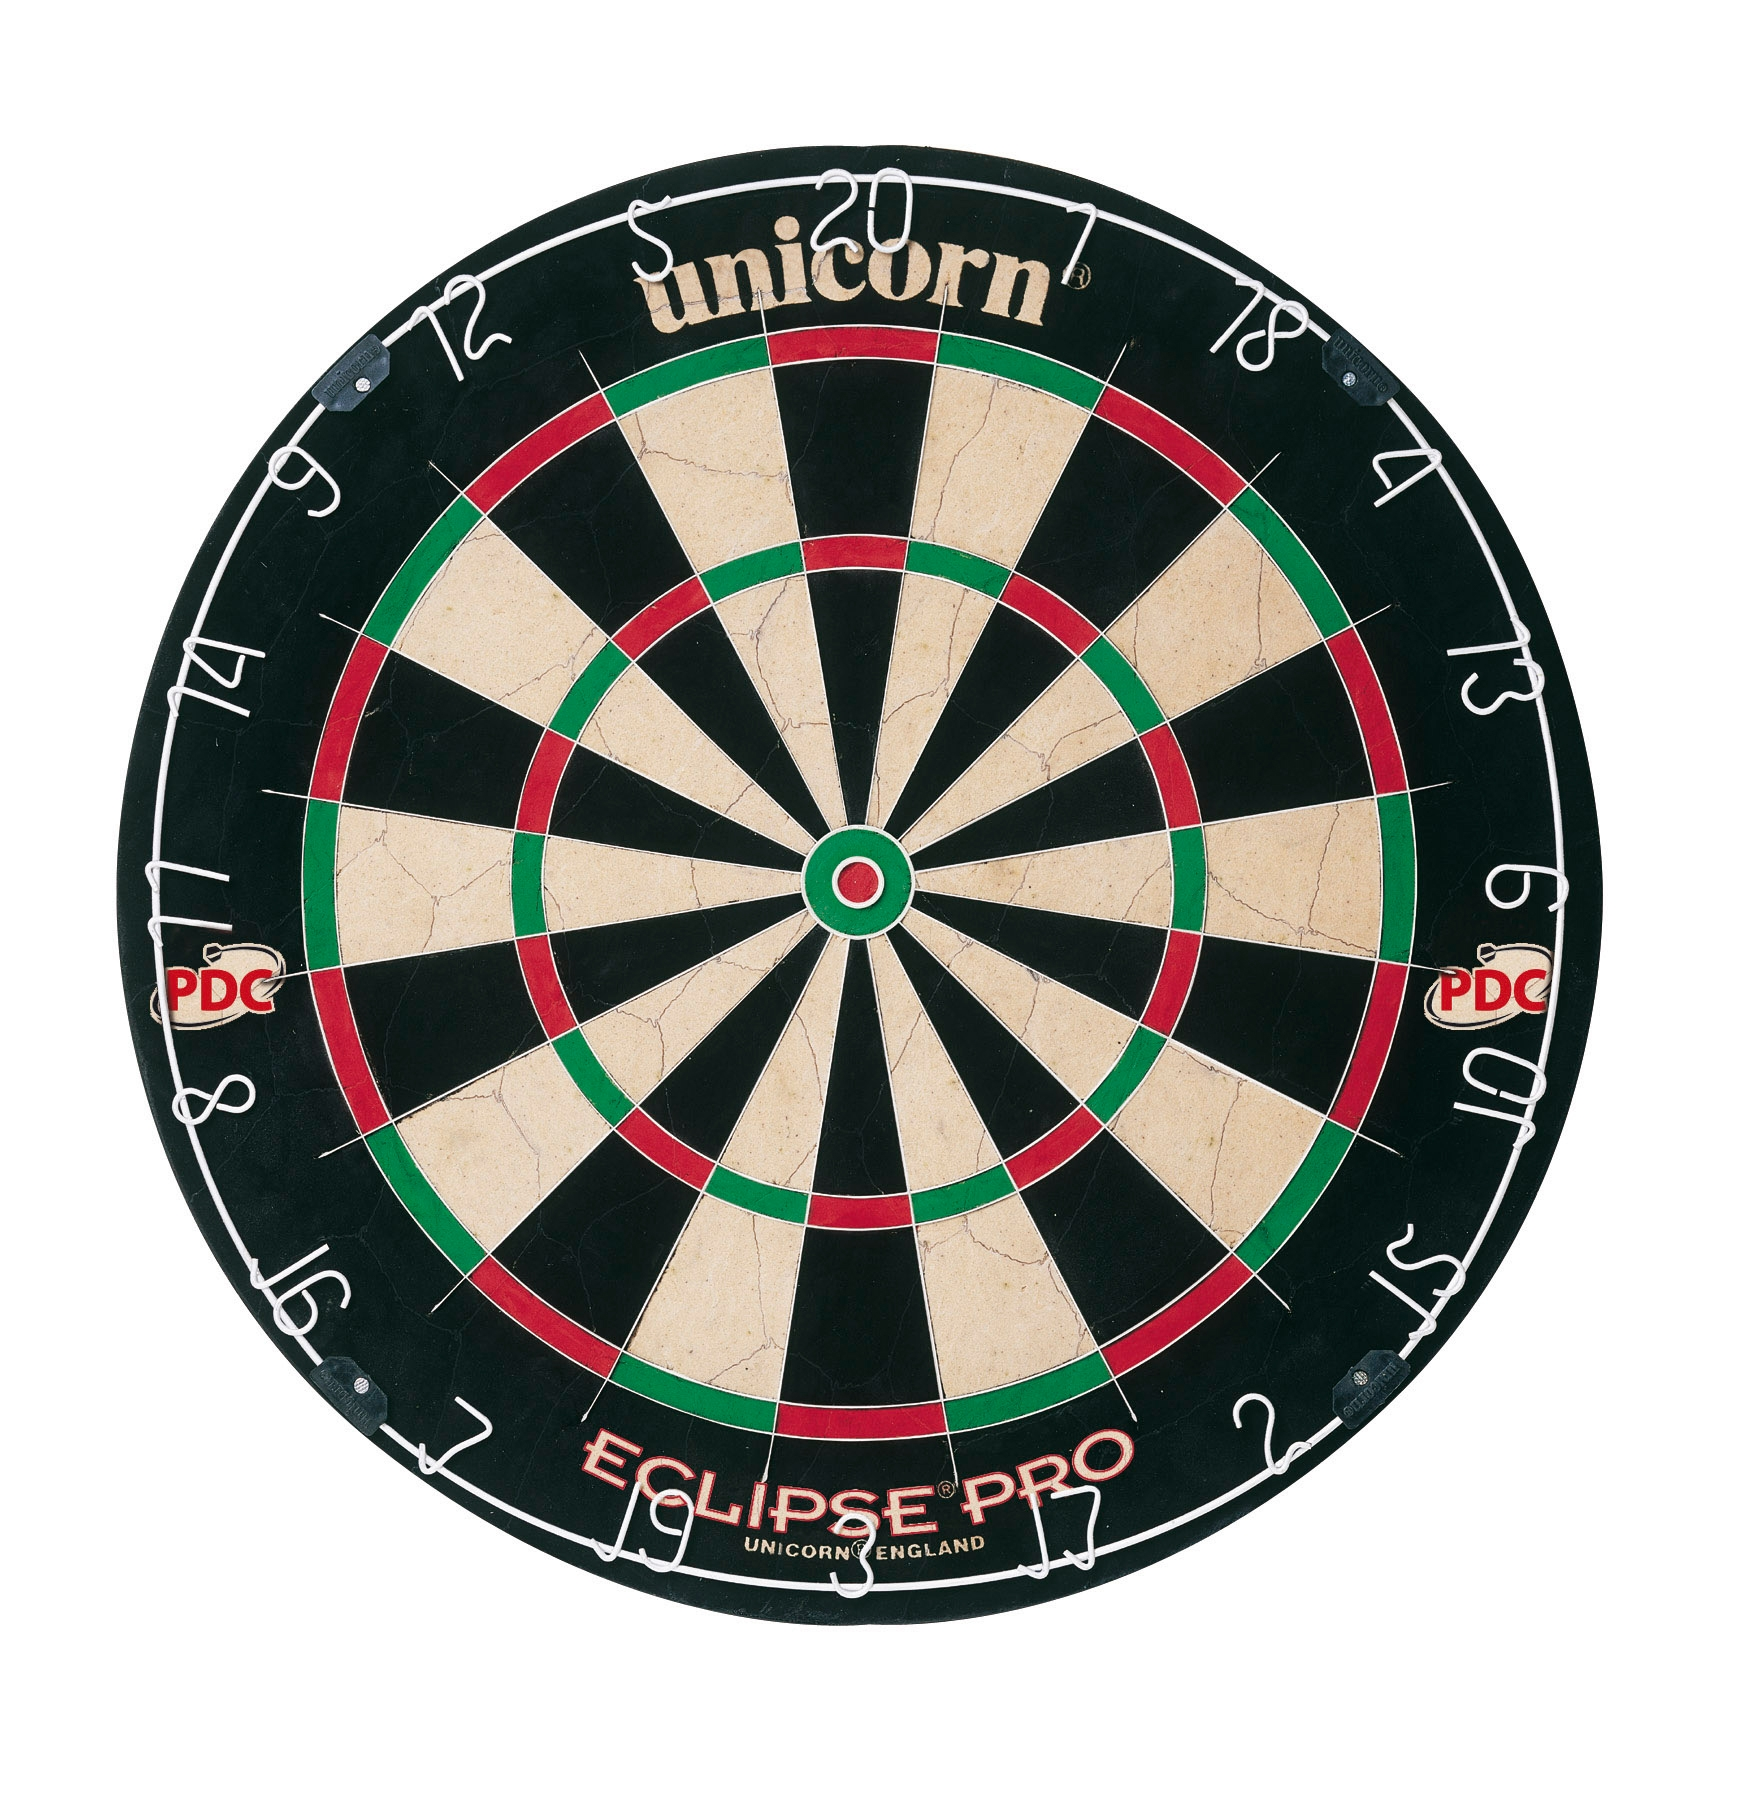 Darttavla Unicorn Eclipse Pro 1-pack